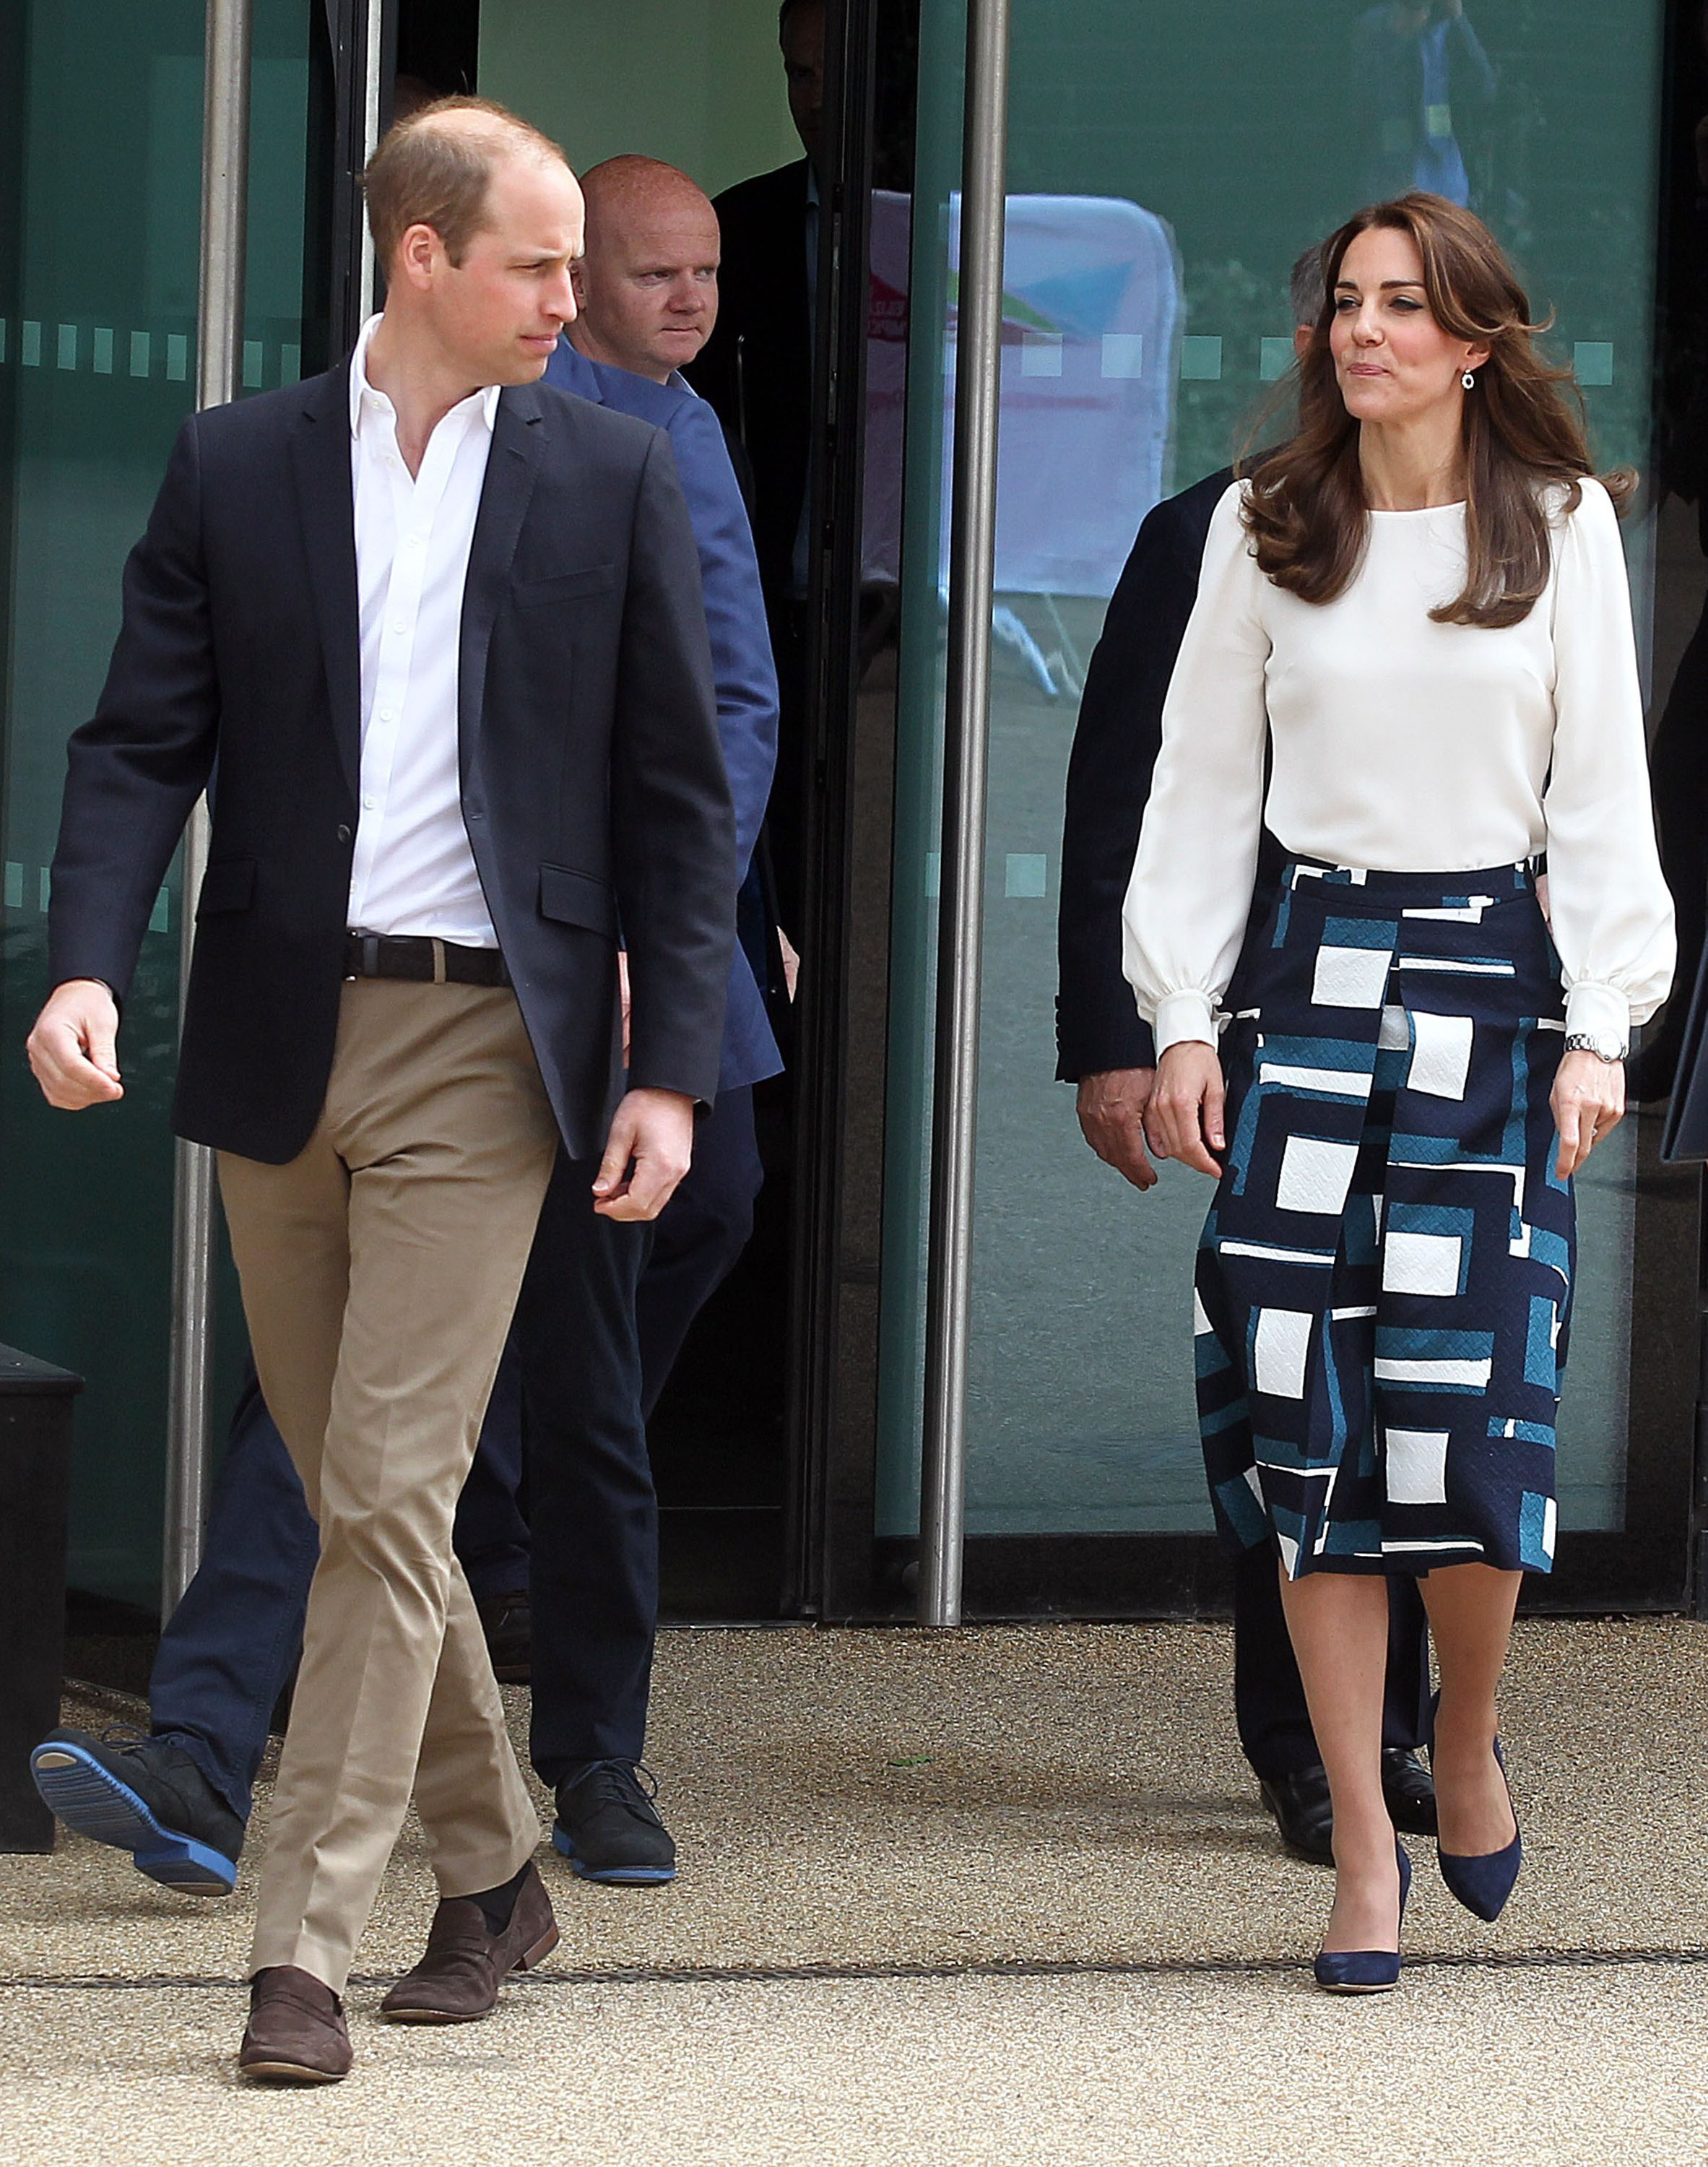 Kate Middleton and Prince William Jealous of Prince Harry – Wrecking Future of Monarchy?